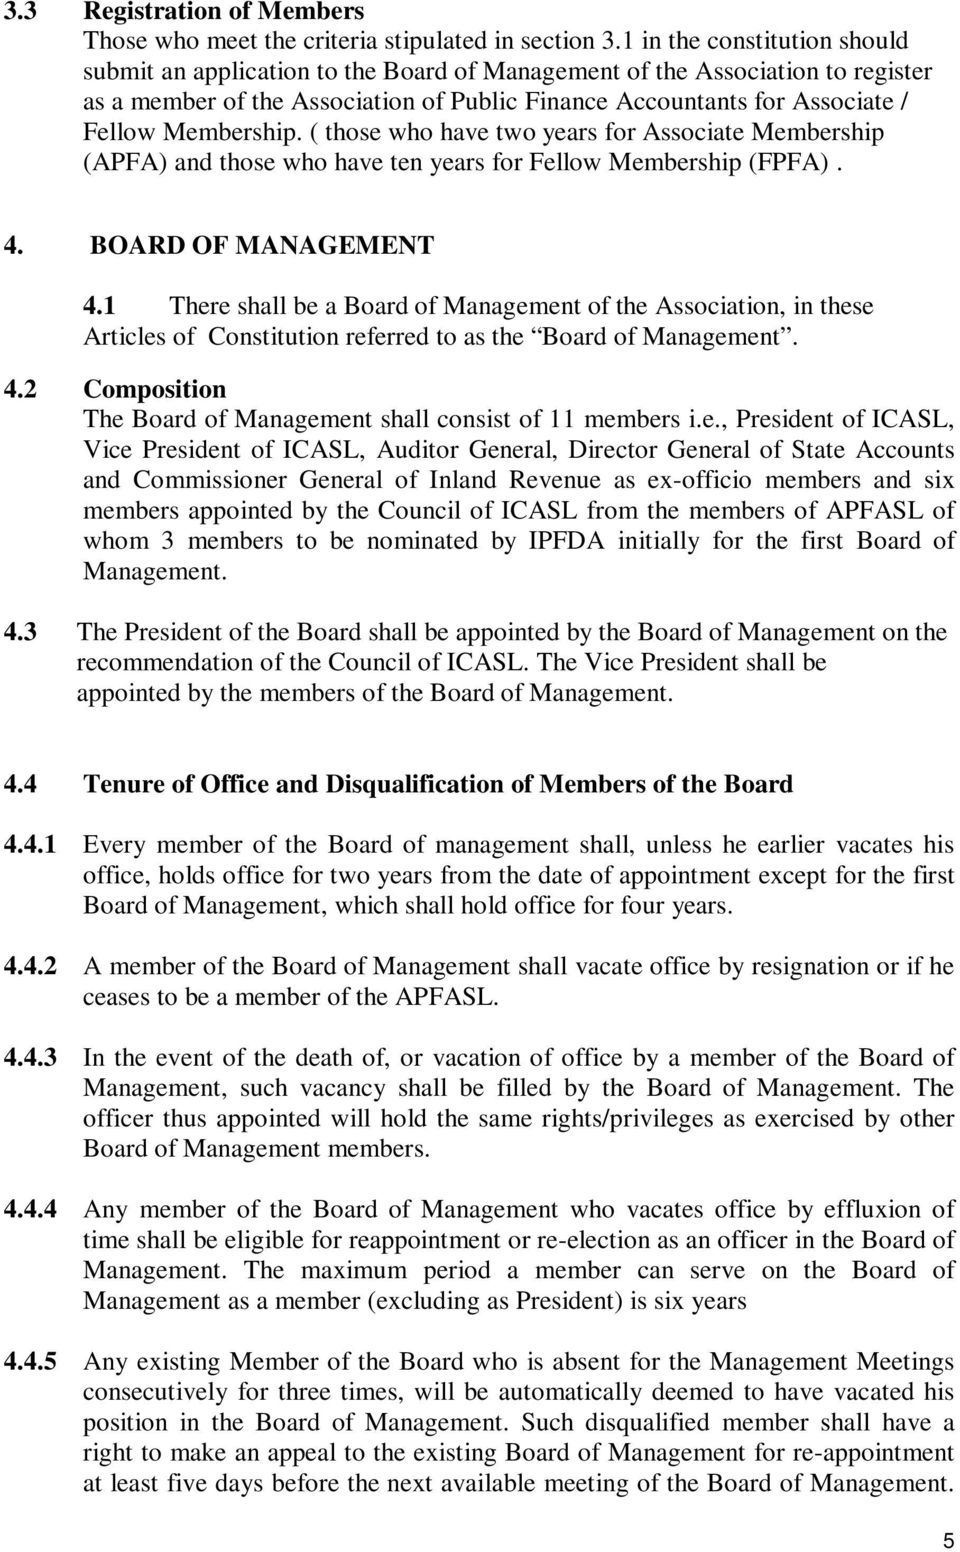 Membership. ( those who have two years for Associate Membership (APFA) and those who have ten years for Fellow Membership (FPFA). 4. BOARD OF MANAGEMENT 4.